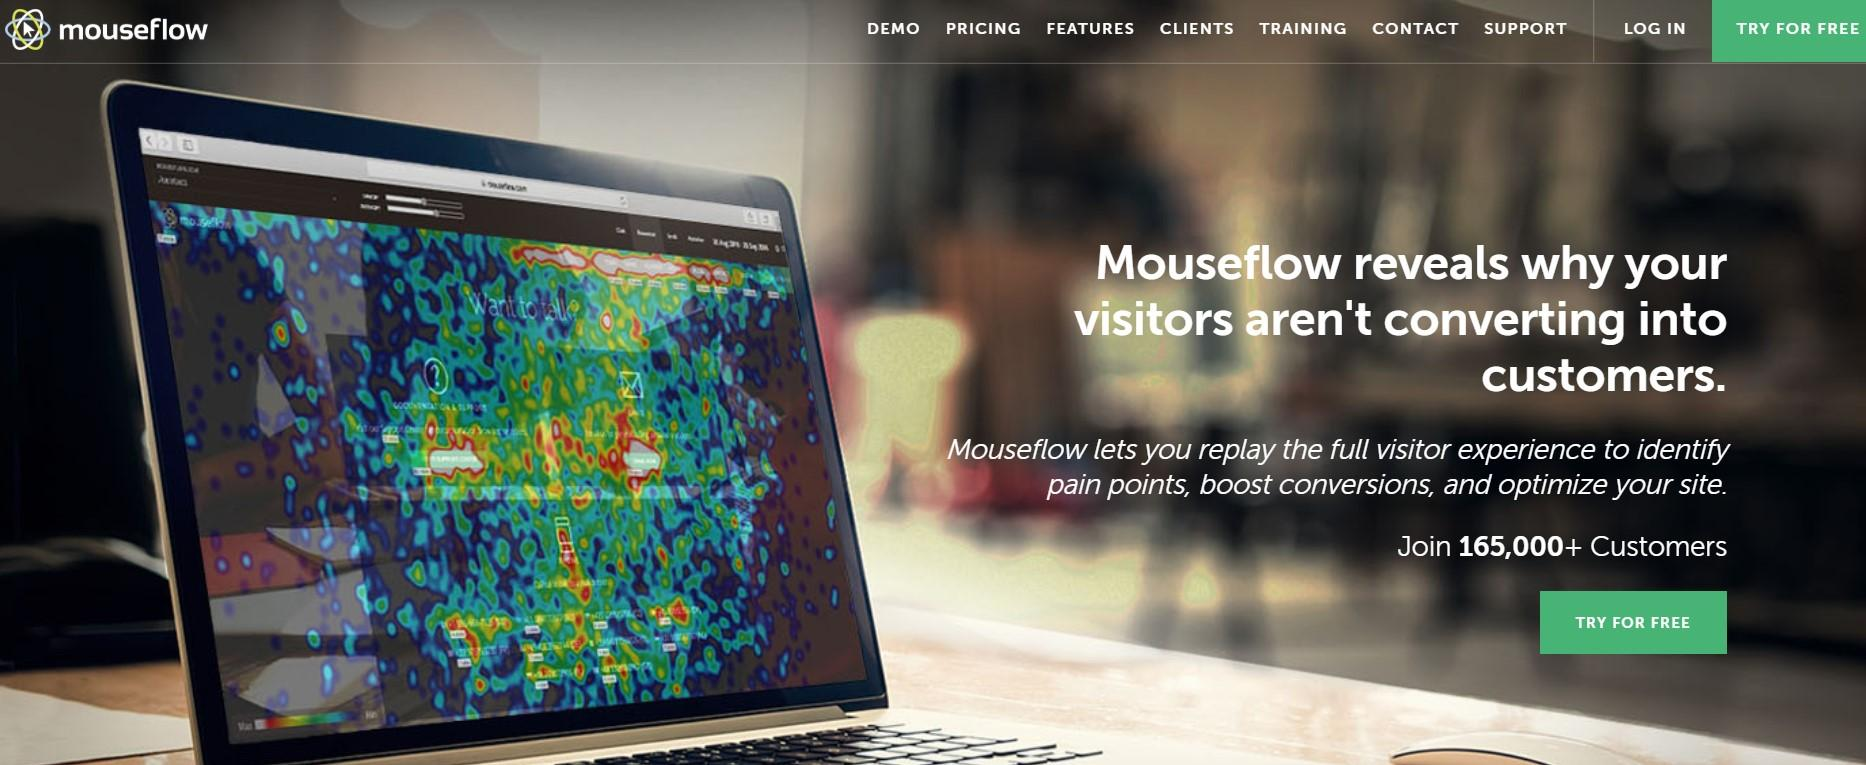 Mouseflow Mouseflow is another heatmap generator and user behavior analysis tool. It increases your conversion rates for web traffic through session replay, heatmaps (click, movement, scroll, attention, and geography), funnels, form analytics, and user feedback. This will help you identify bottlenecks within your website. Price: Plan starts at $24/month